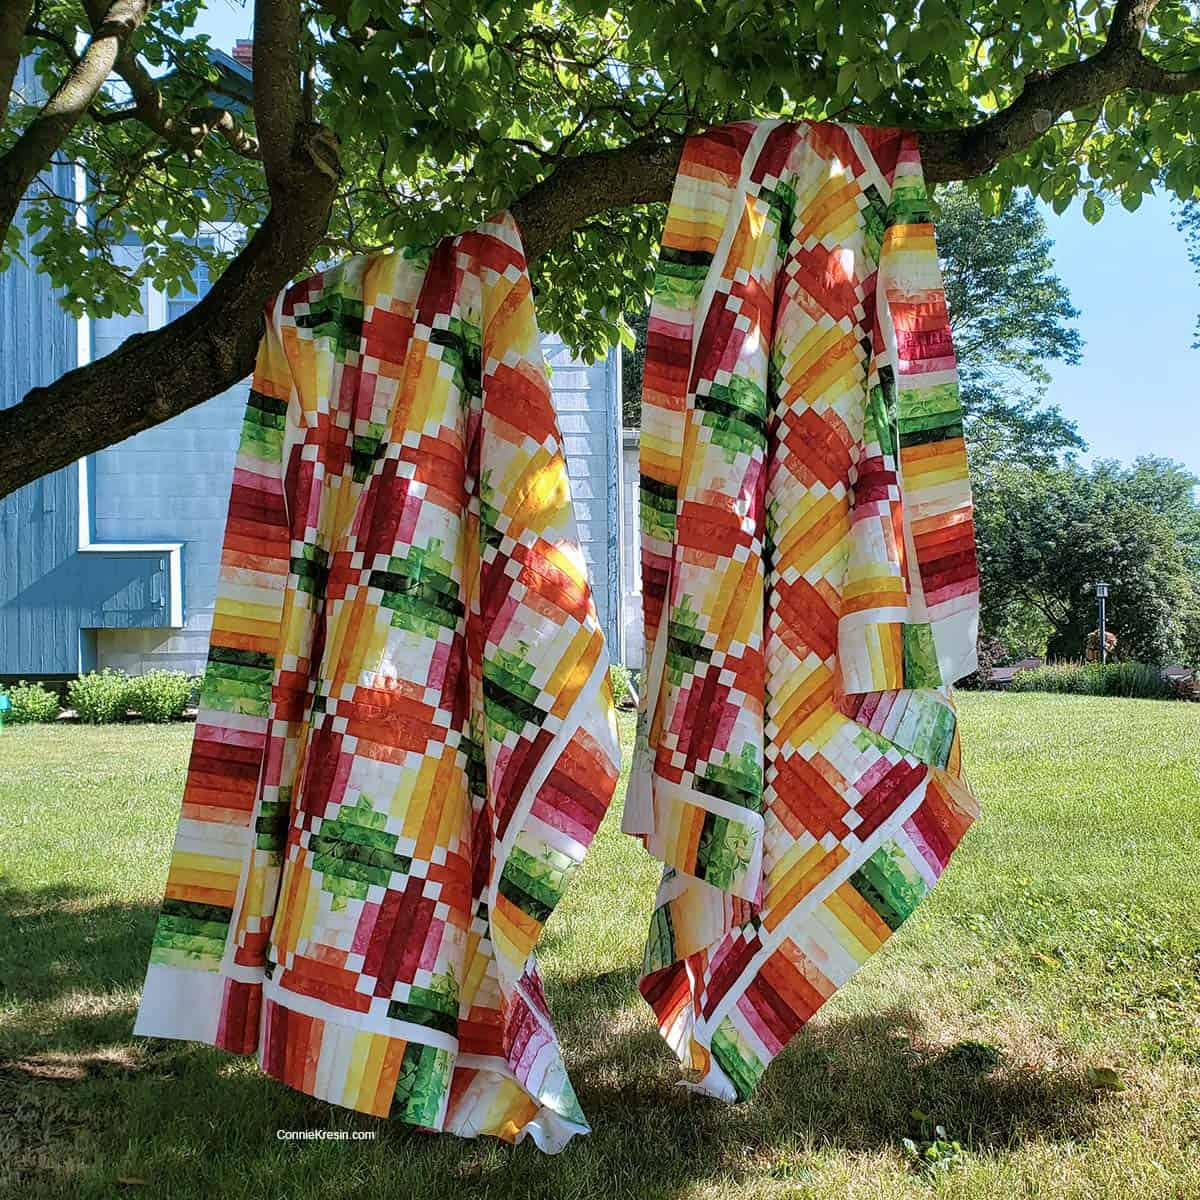 Both Fruit Slices quilt hanging in a tree